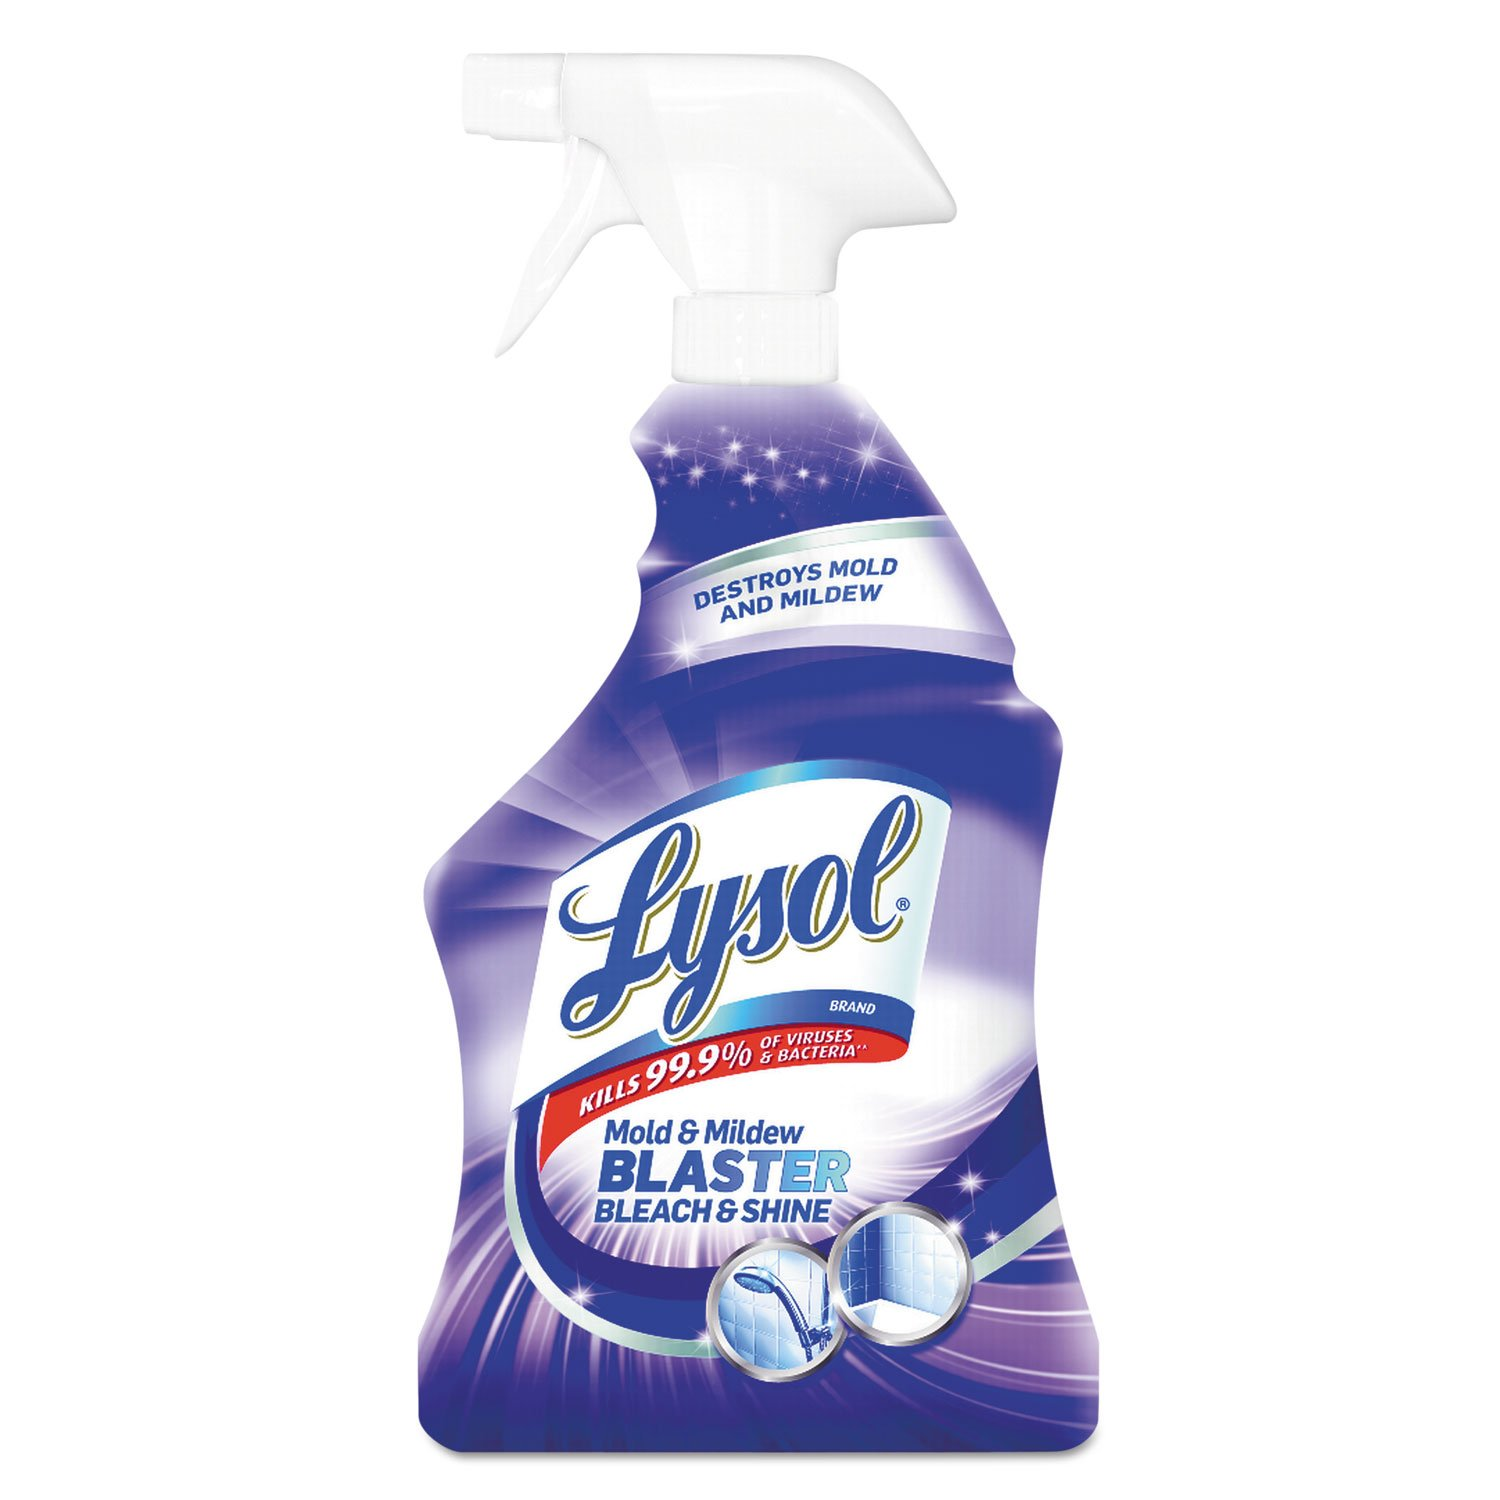 Lysol 78915EA Mold & Mildew Blaster with Bleach, Ready to Use, 32oz Spray Bottle